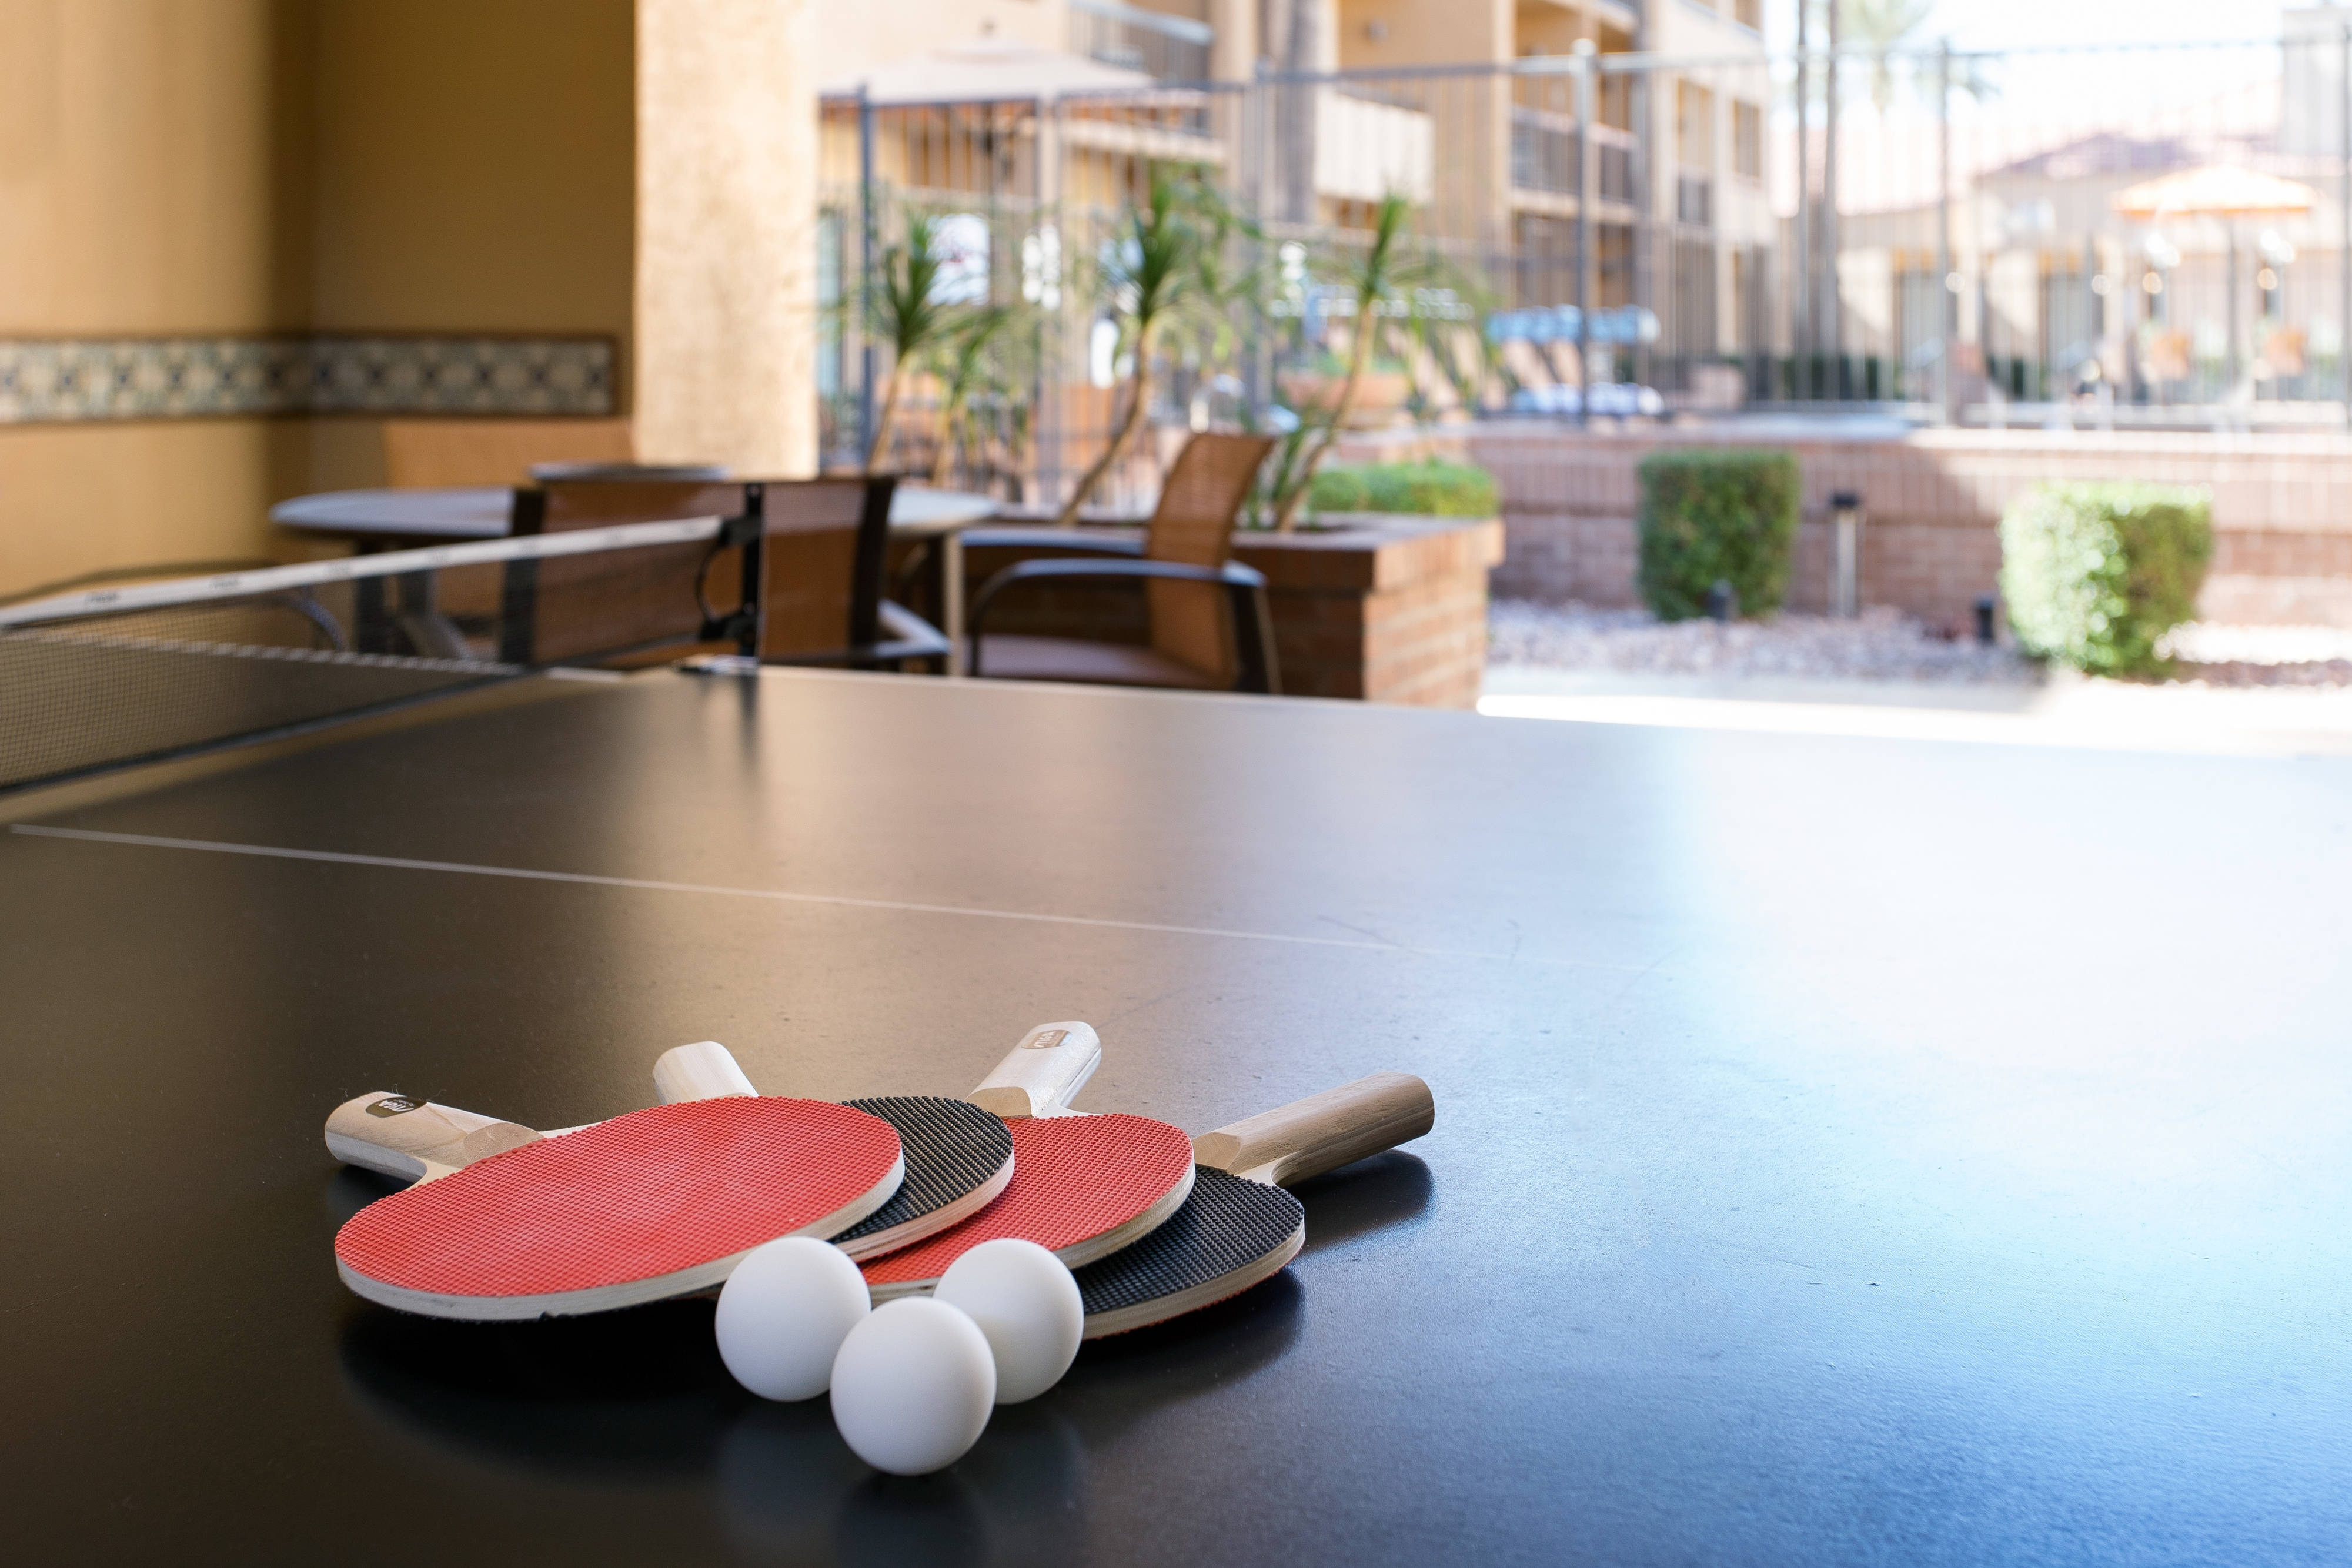 Rec Room - Ping Pong Table